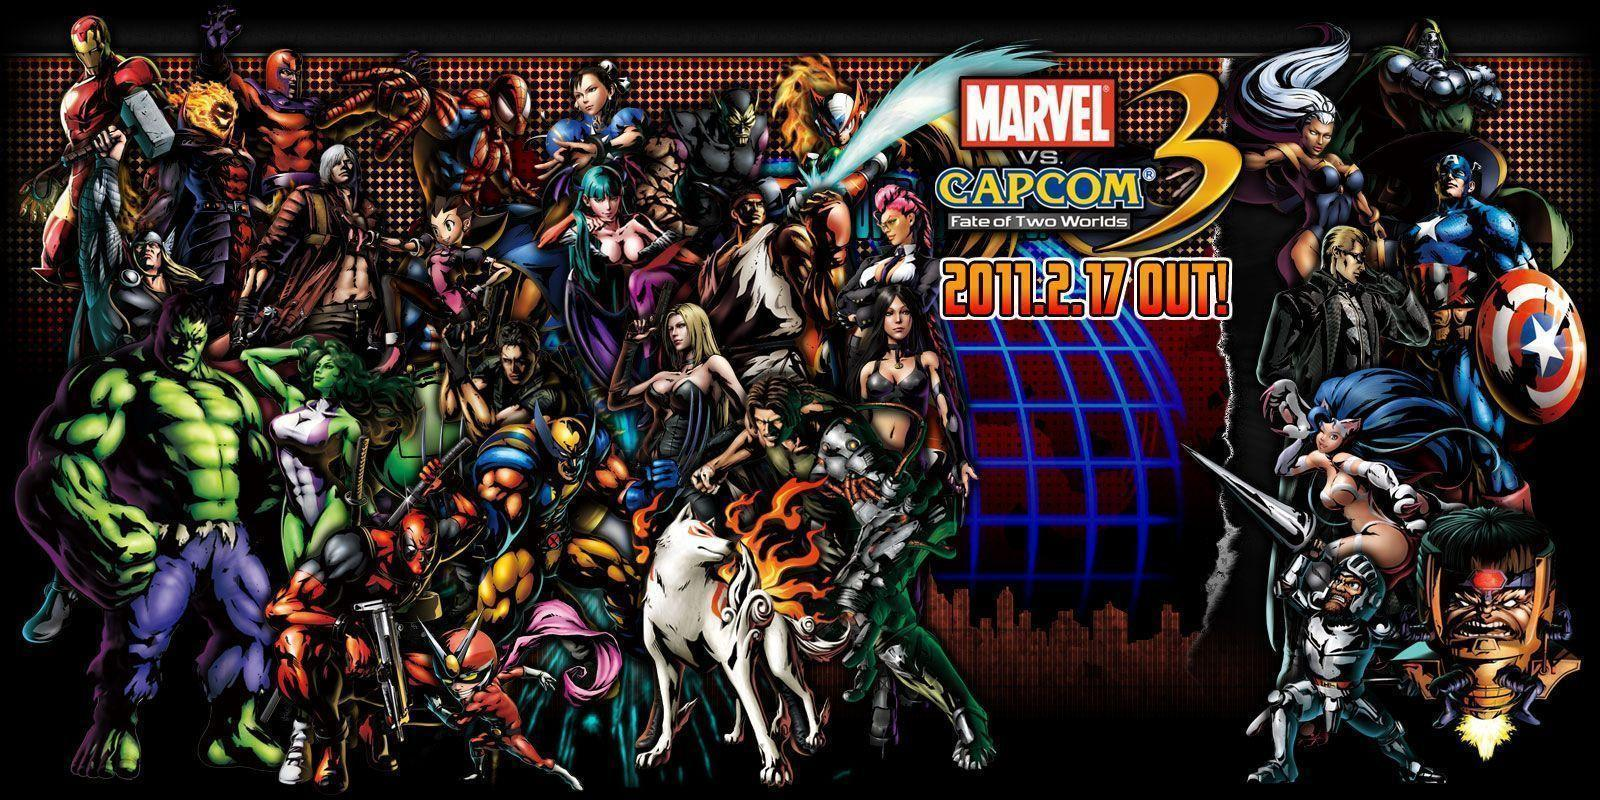 Wallpapers HD de Marvel y Capcom